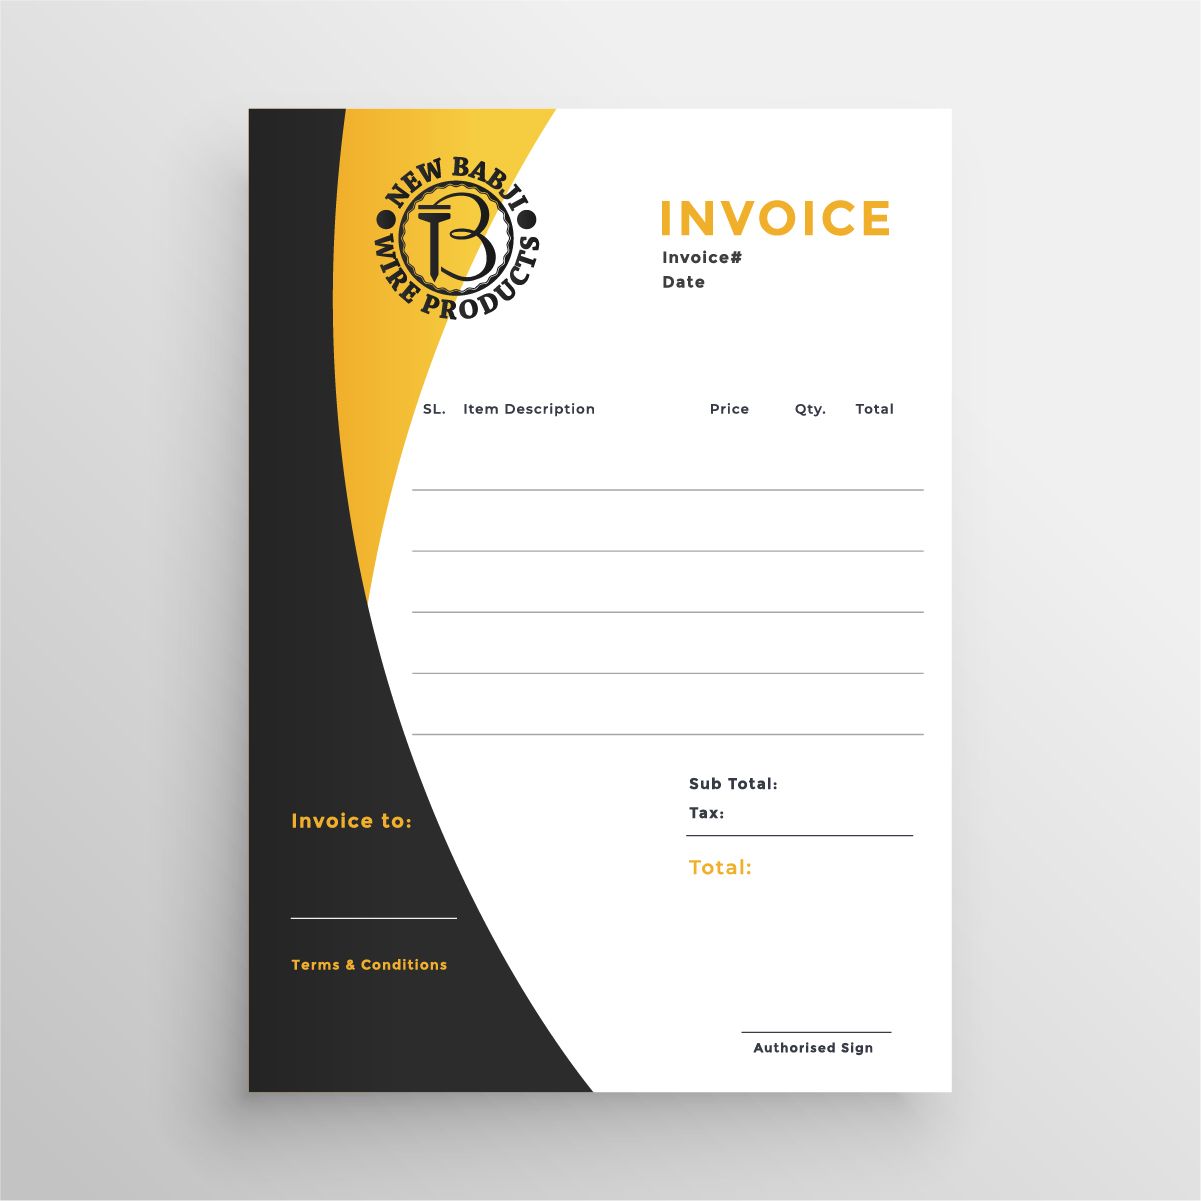 Invoice design for manufacturing company by Badri design